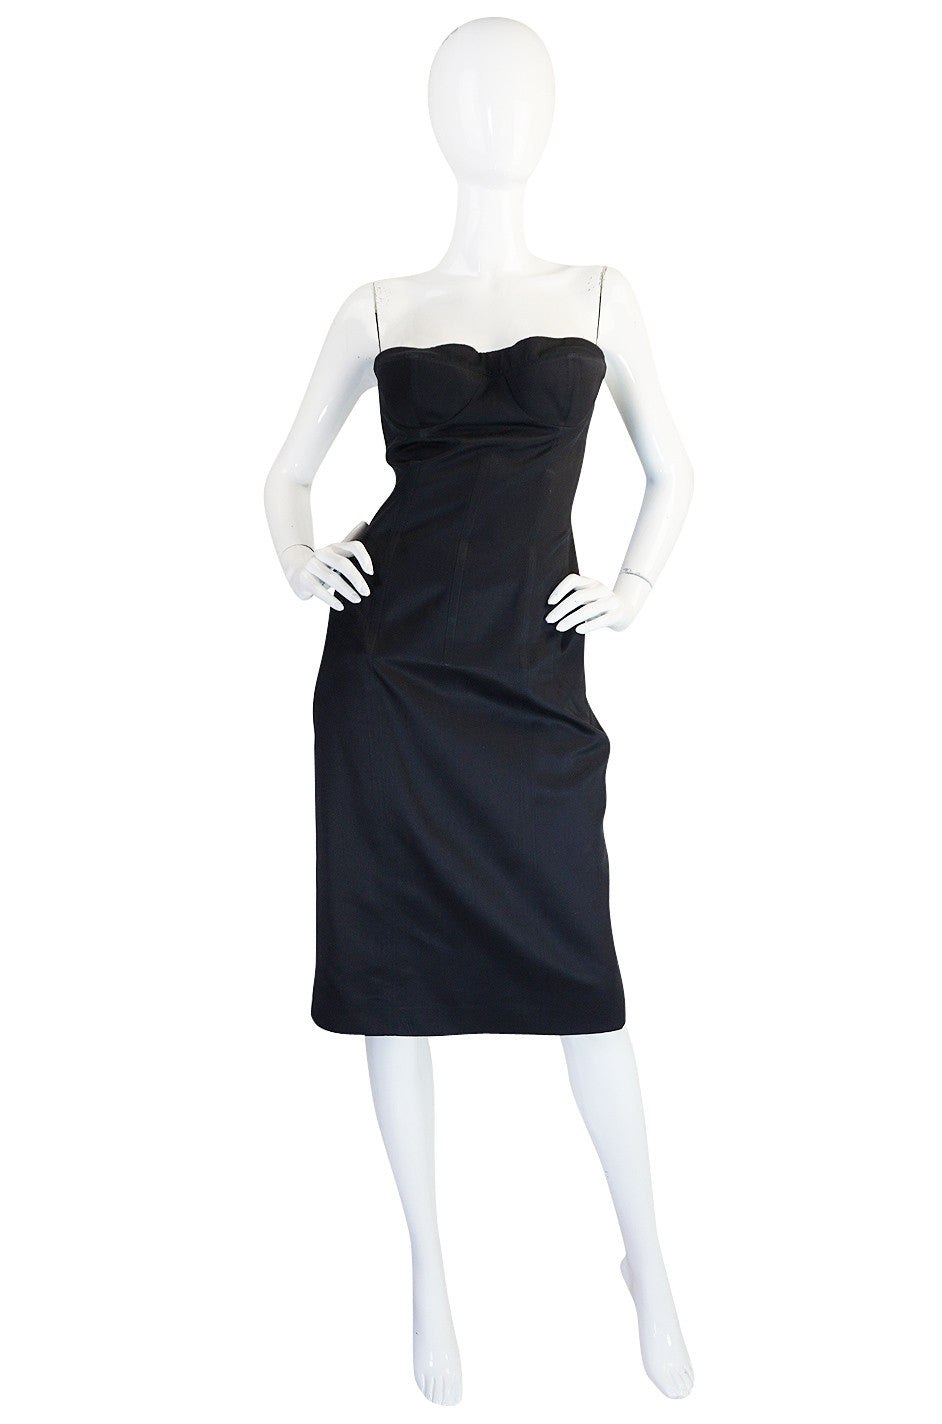 797be4ea951 Spring 2001 Tom Ford for Gucci Black Bustier Dress ...